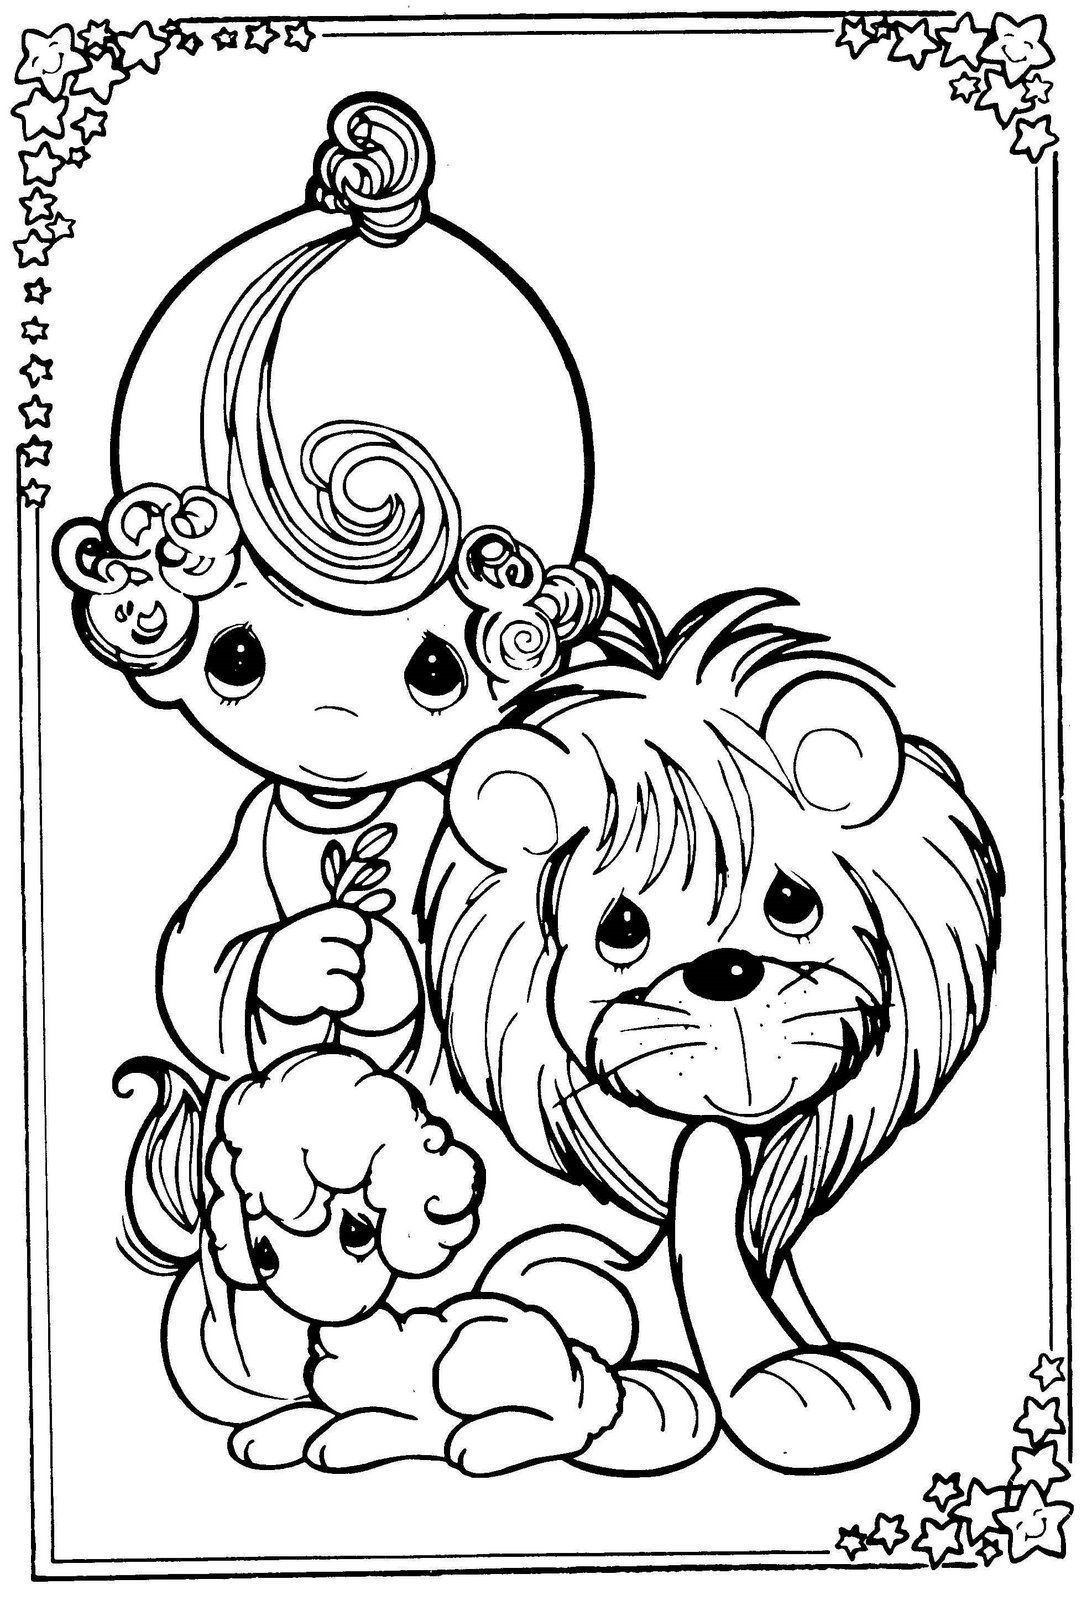 Lion and Lamb Coloring Pages  Collection 14e - Free Download